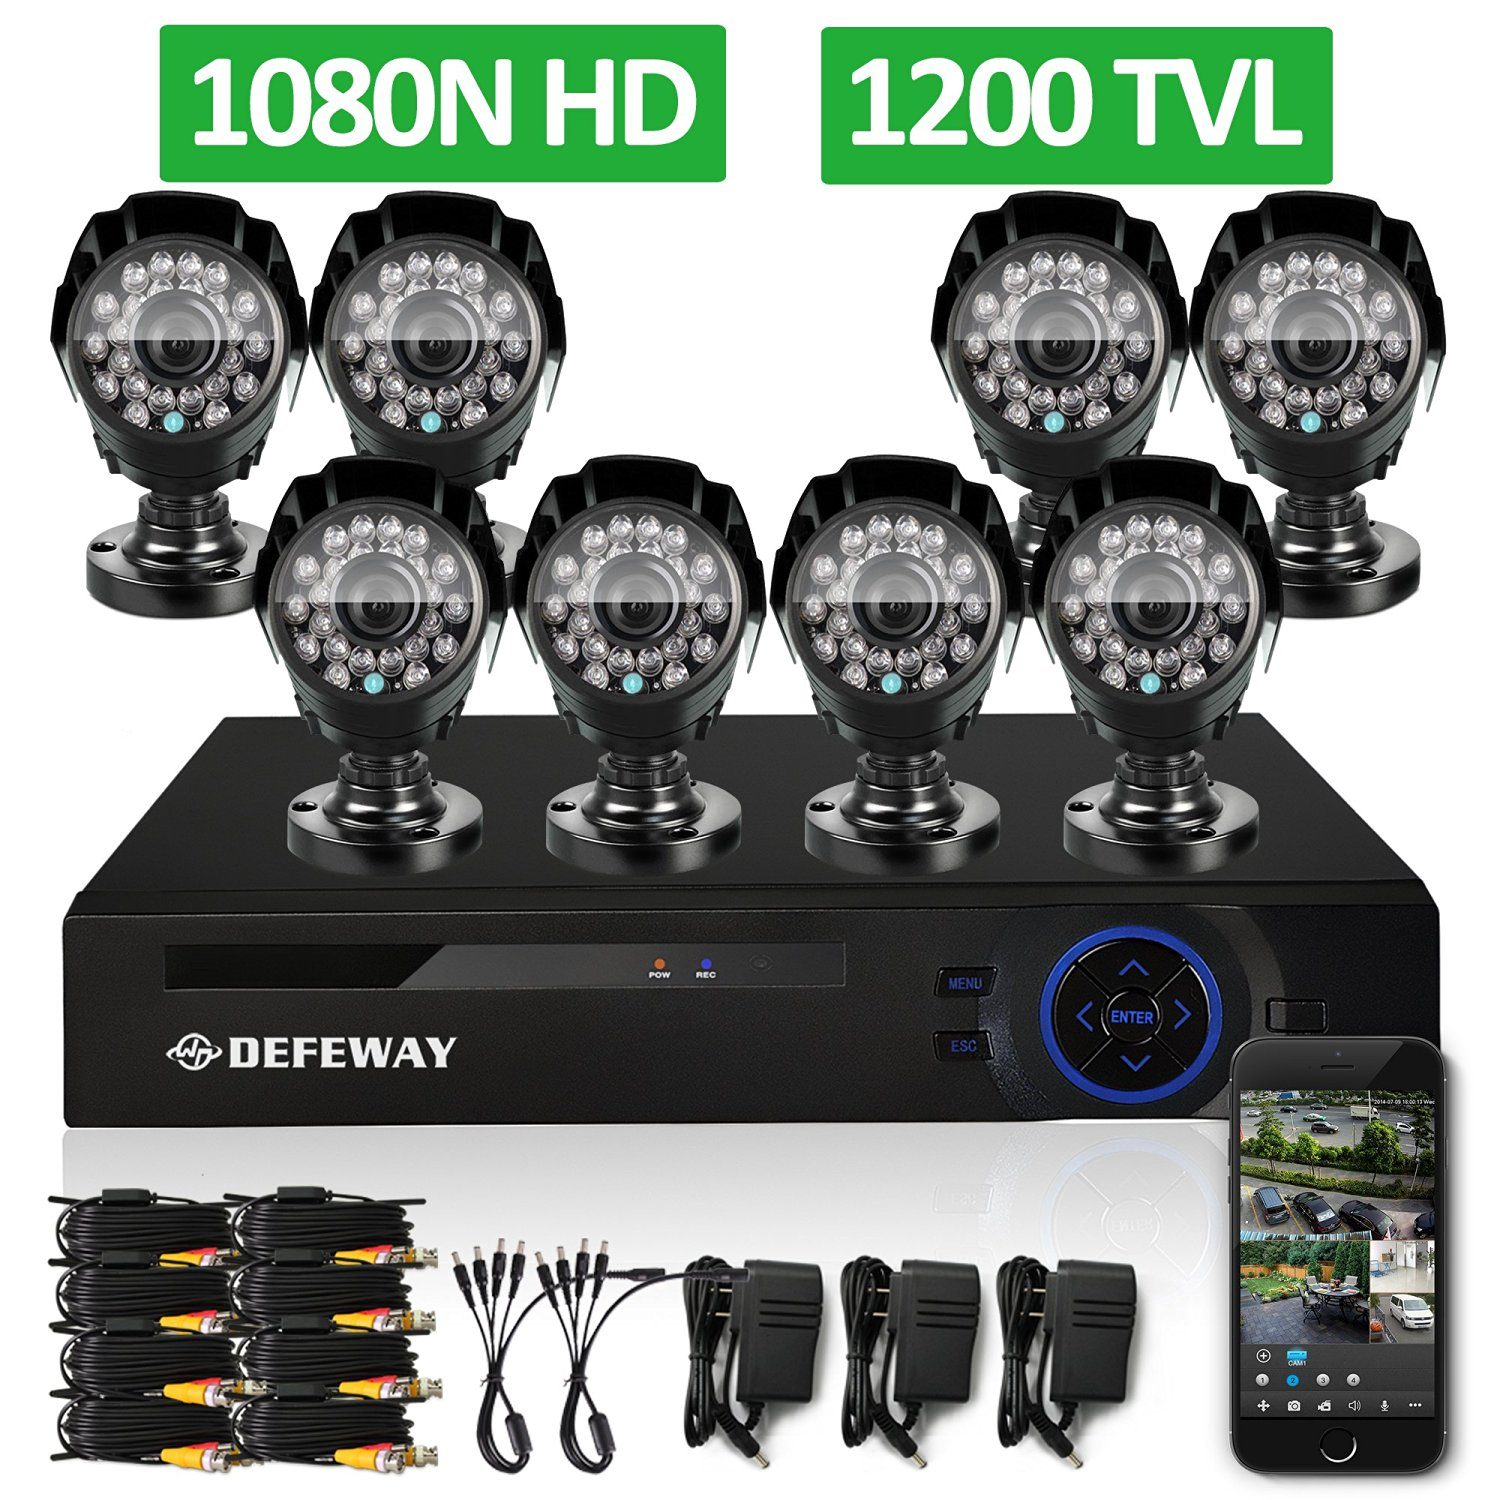 DEFEWAY 8CH 1080N Security DVR 8 1200TVL 720P HD Outdoor Video Surveillance Camera